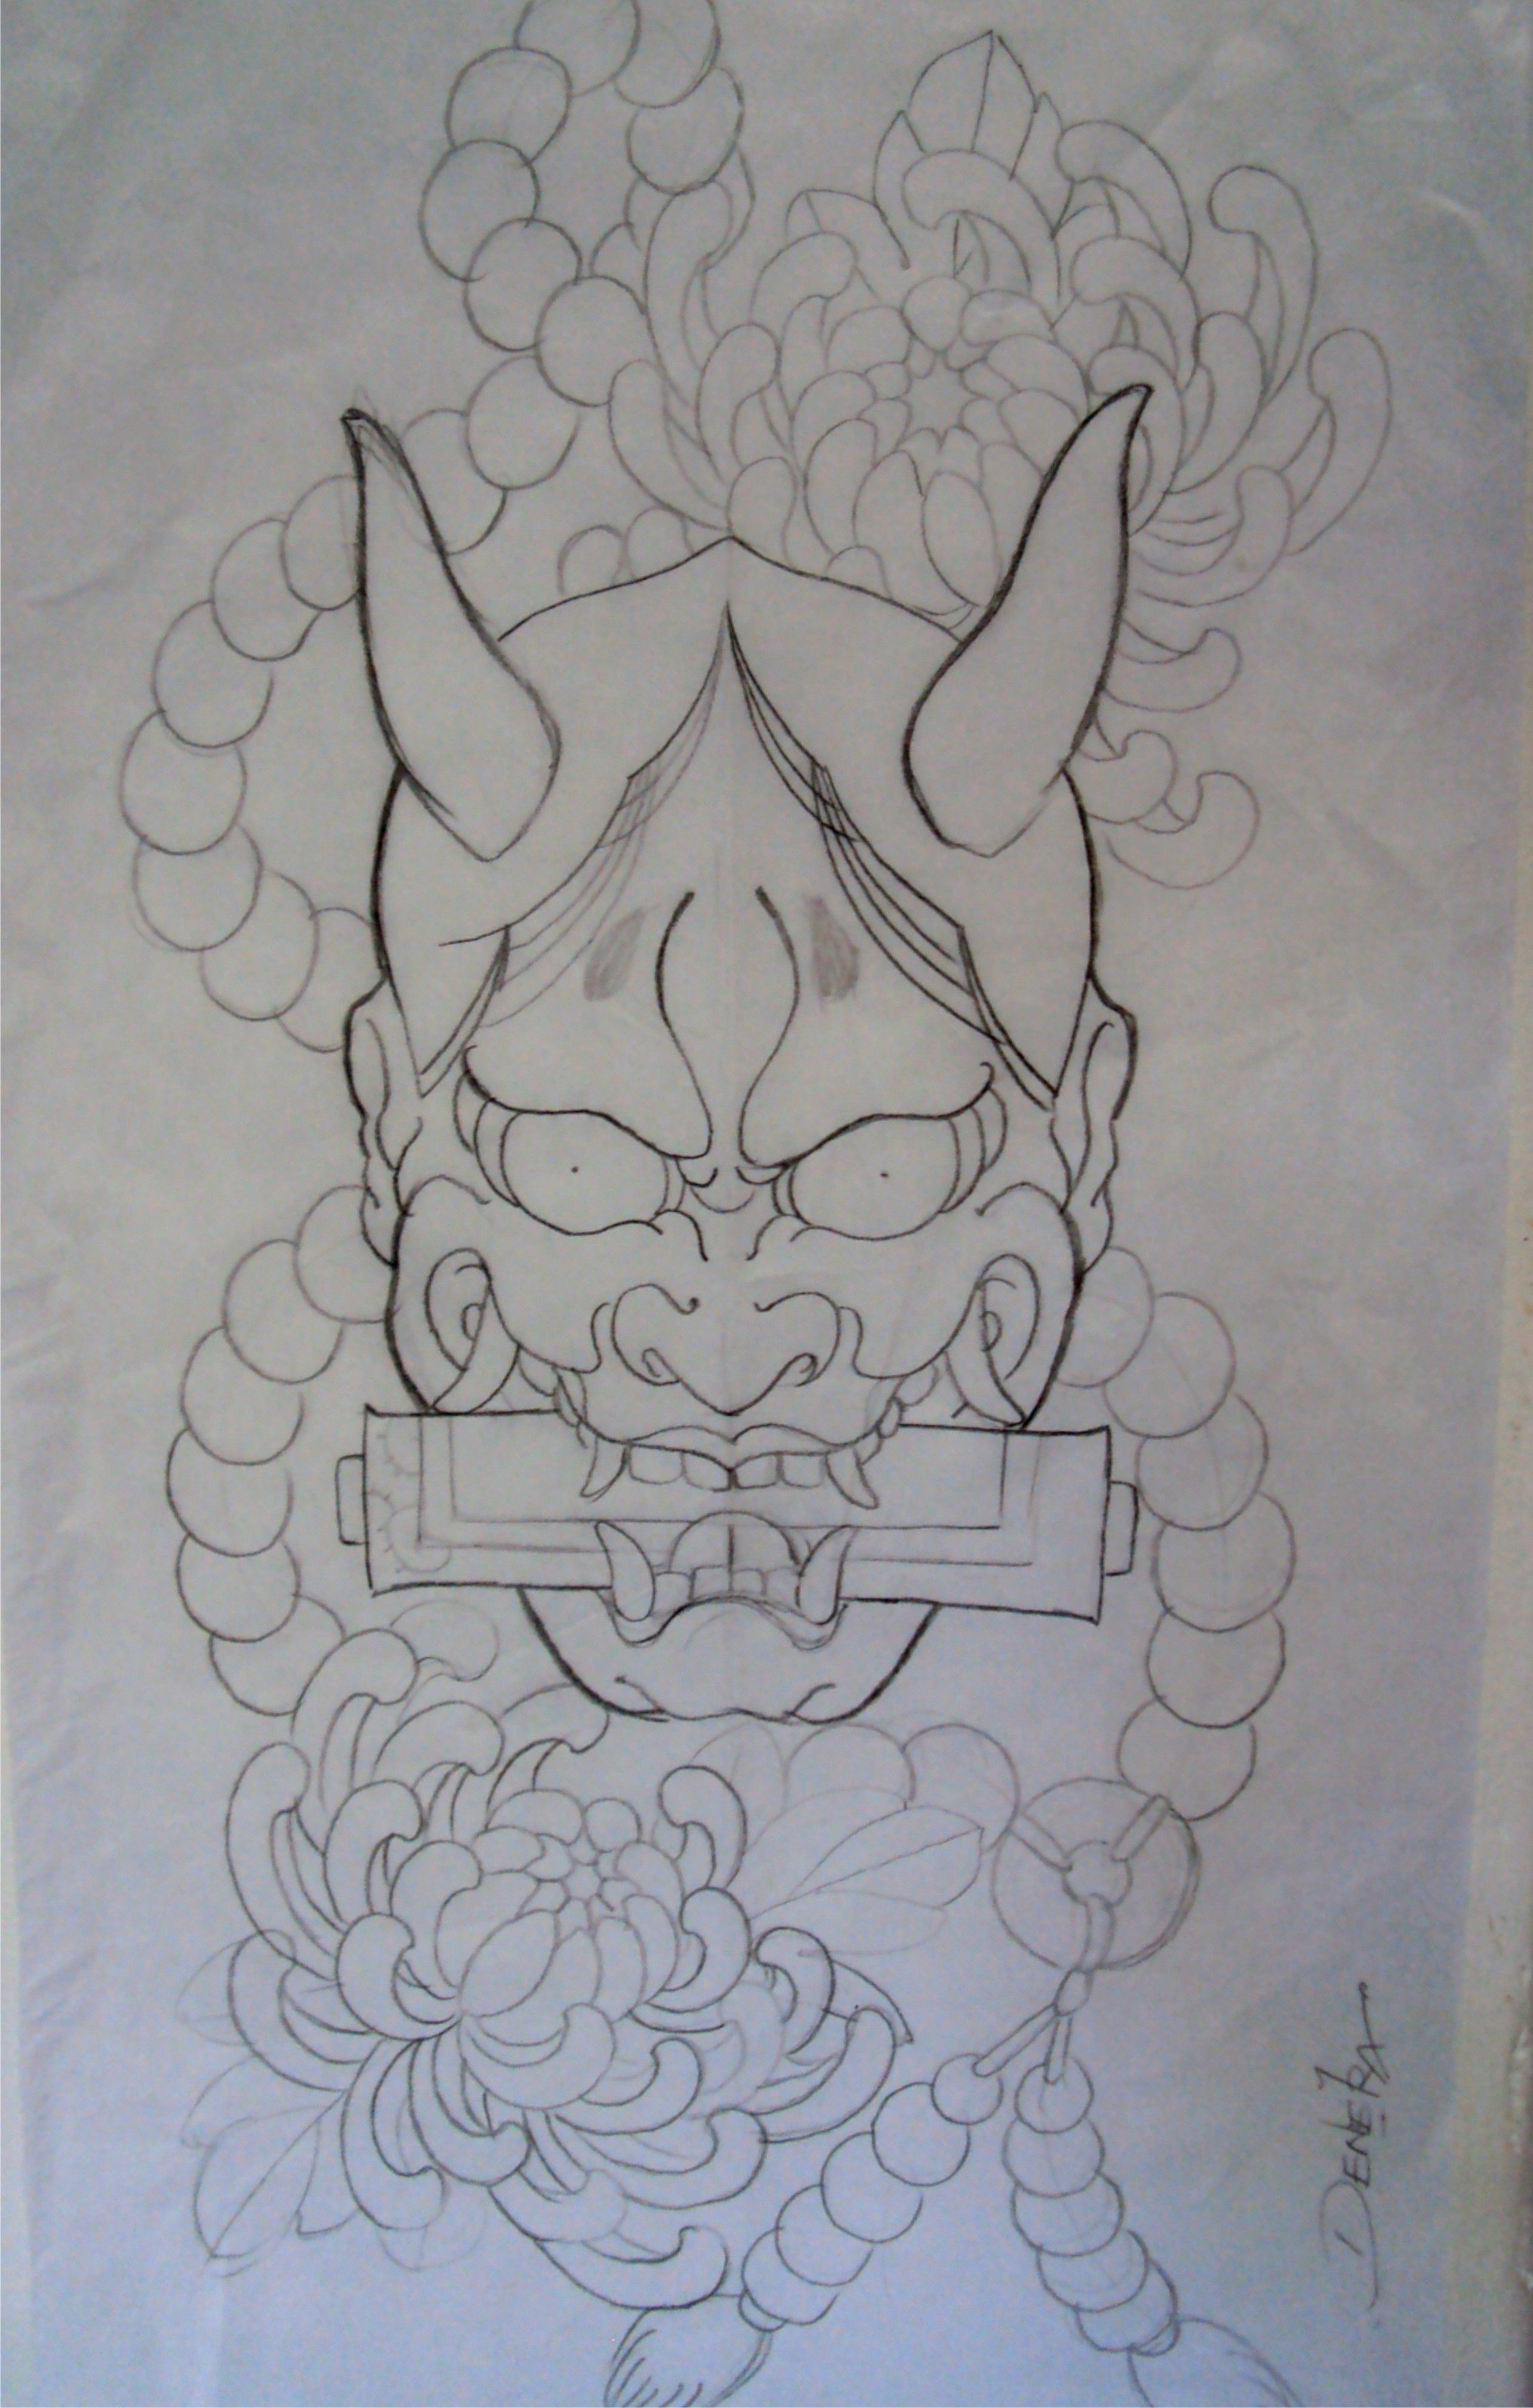 traditional japanese mask tattoo sleeve tattoos pinterest japanese mask tattoo japanese. Black Bedroom Furniture Sets. Home Design Ideas